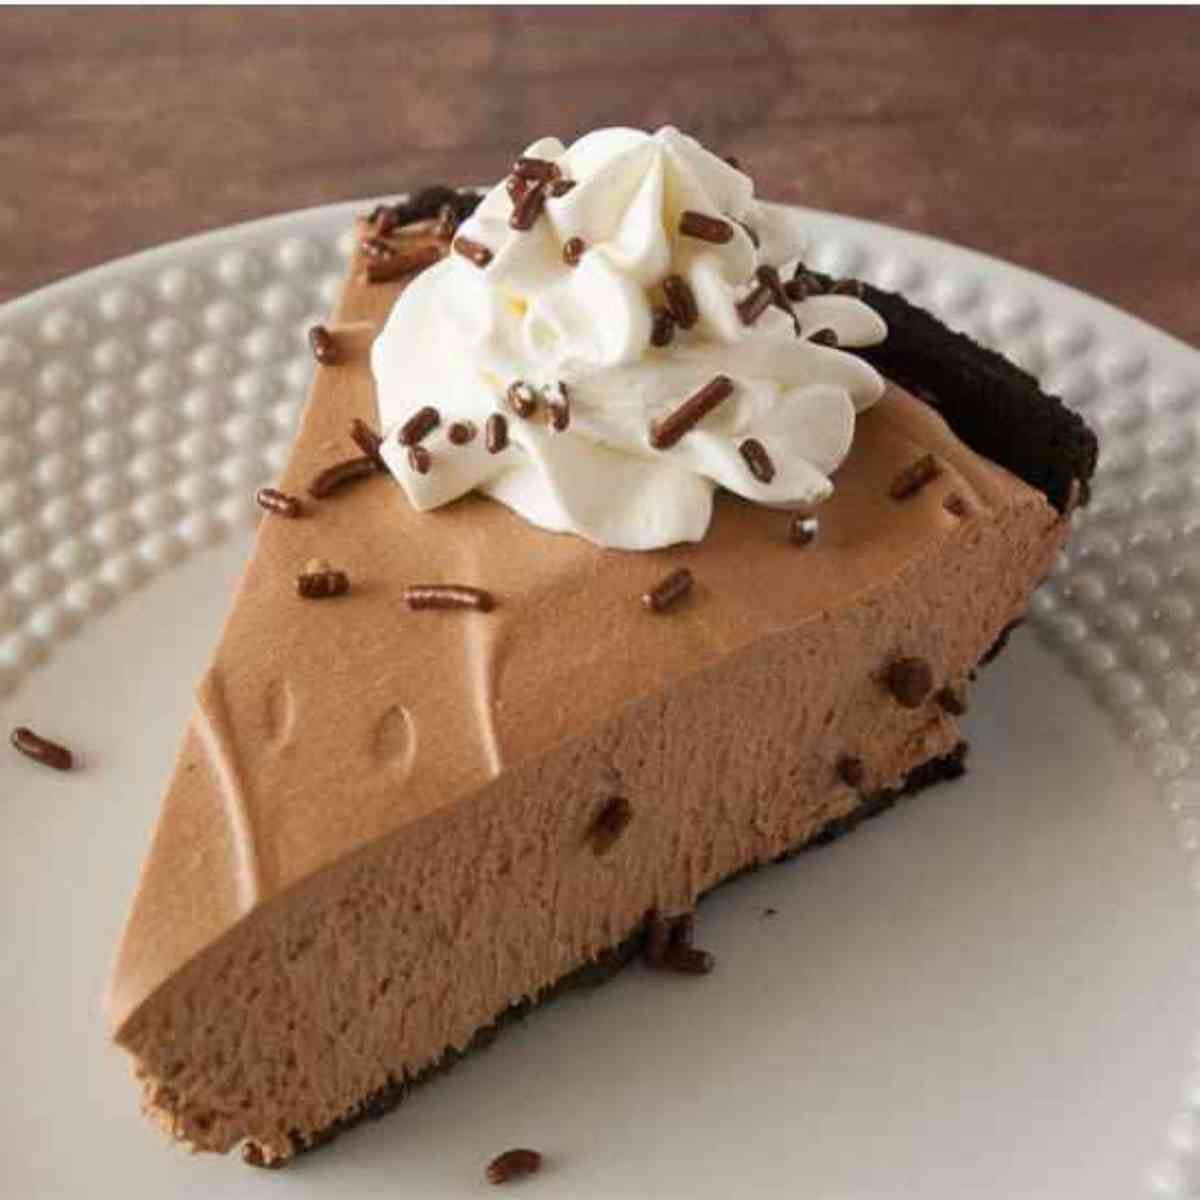 Slice of chocolate mousse pie garnished with whipped cream.